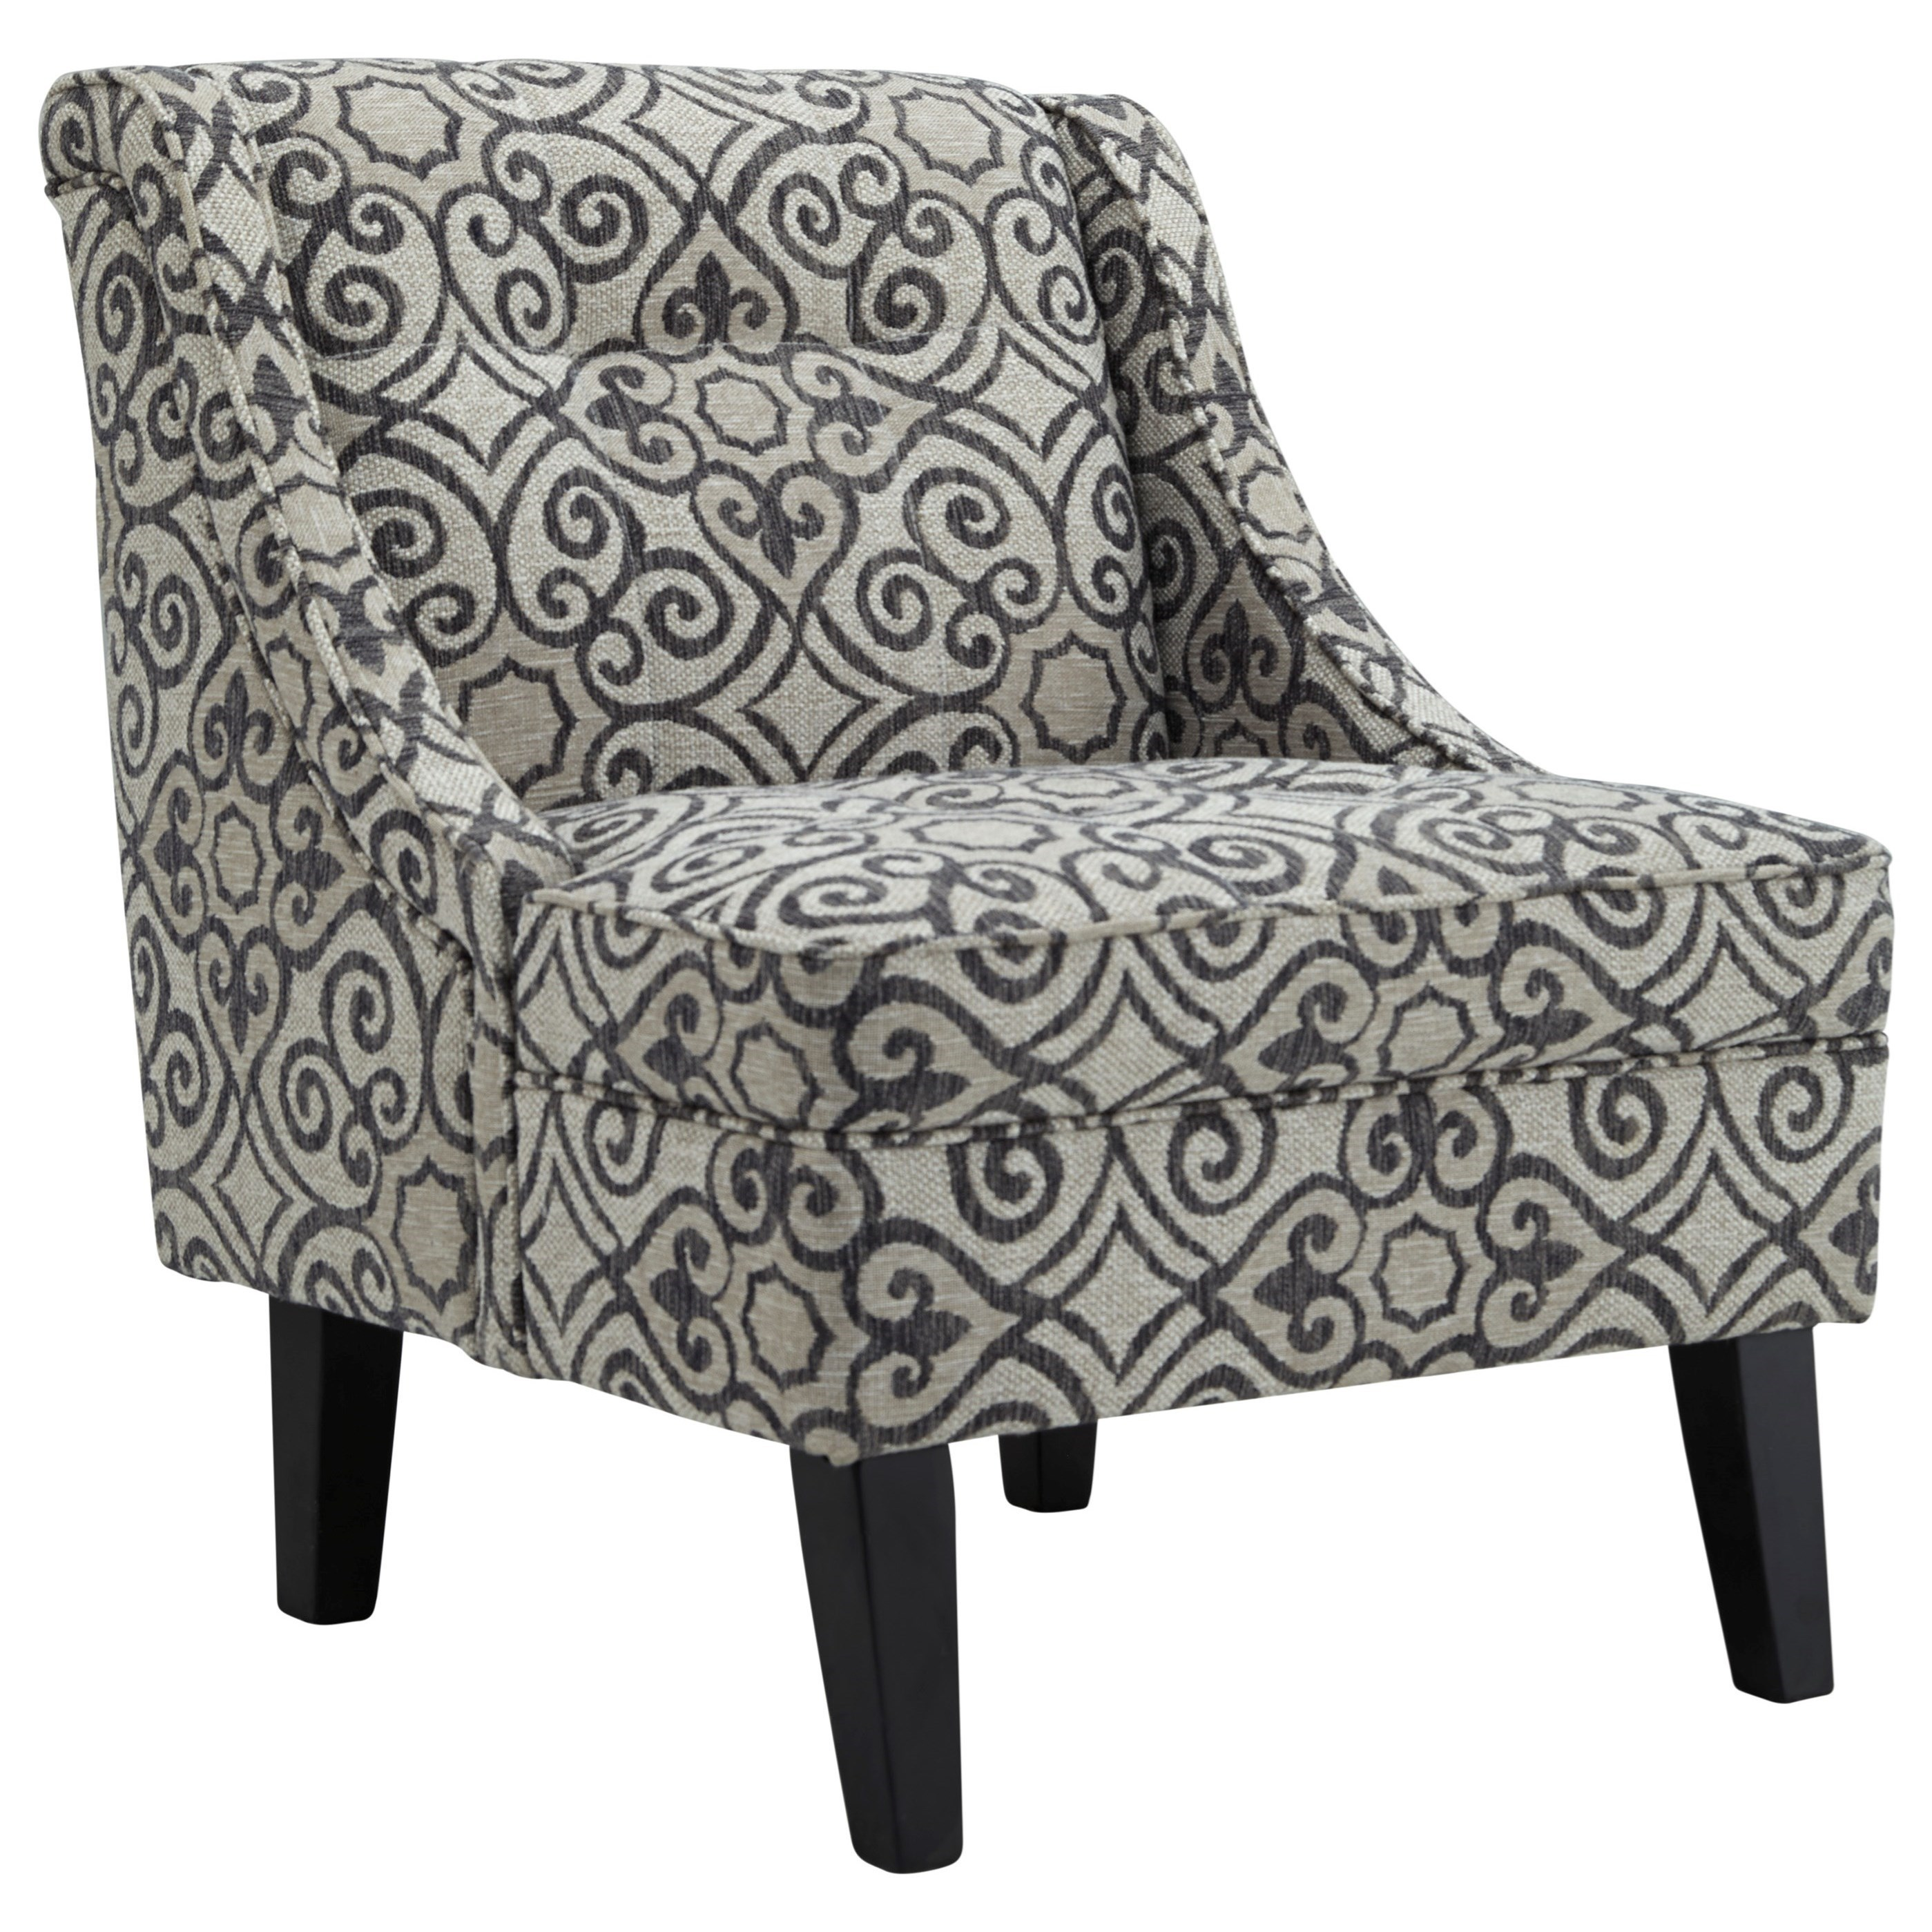 Kestrel Accent Chair With Gray/Cream Pattern Fabric By Ashley Furniture